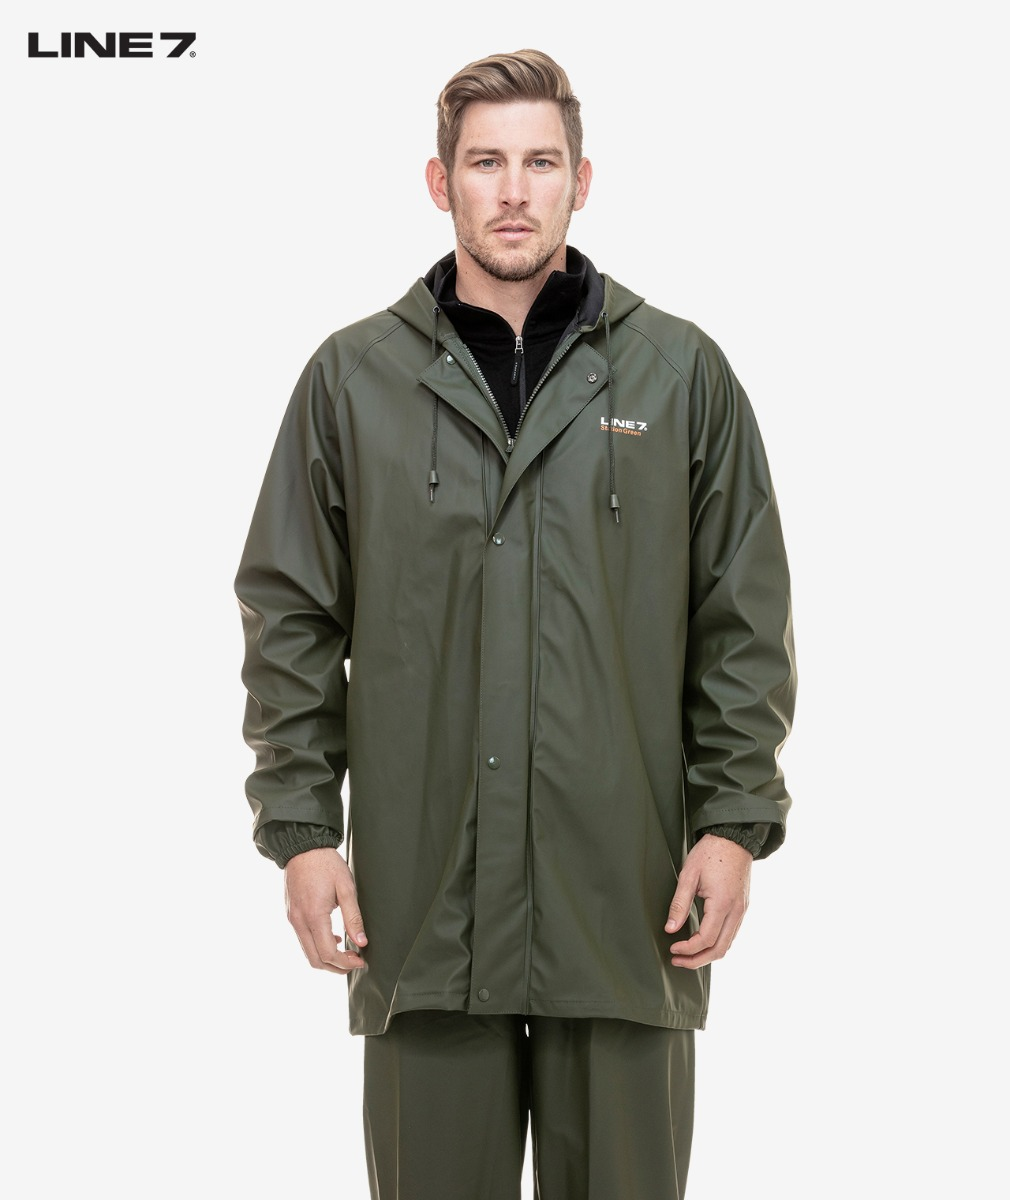 Line 7 Men's Station Green Waterproof Jacket